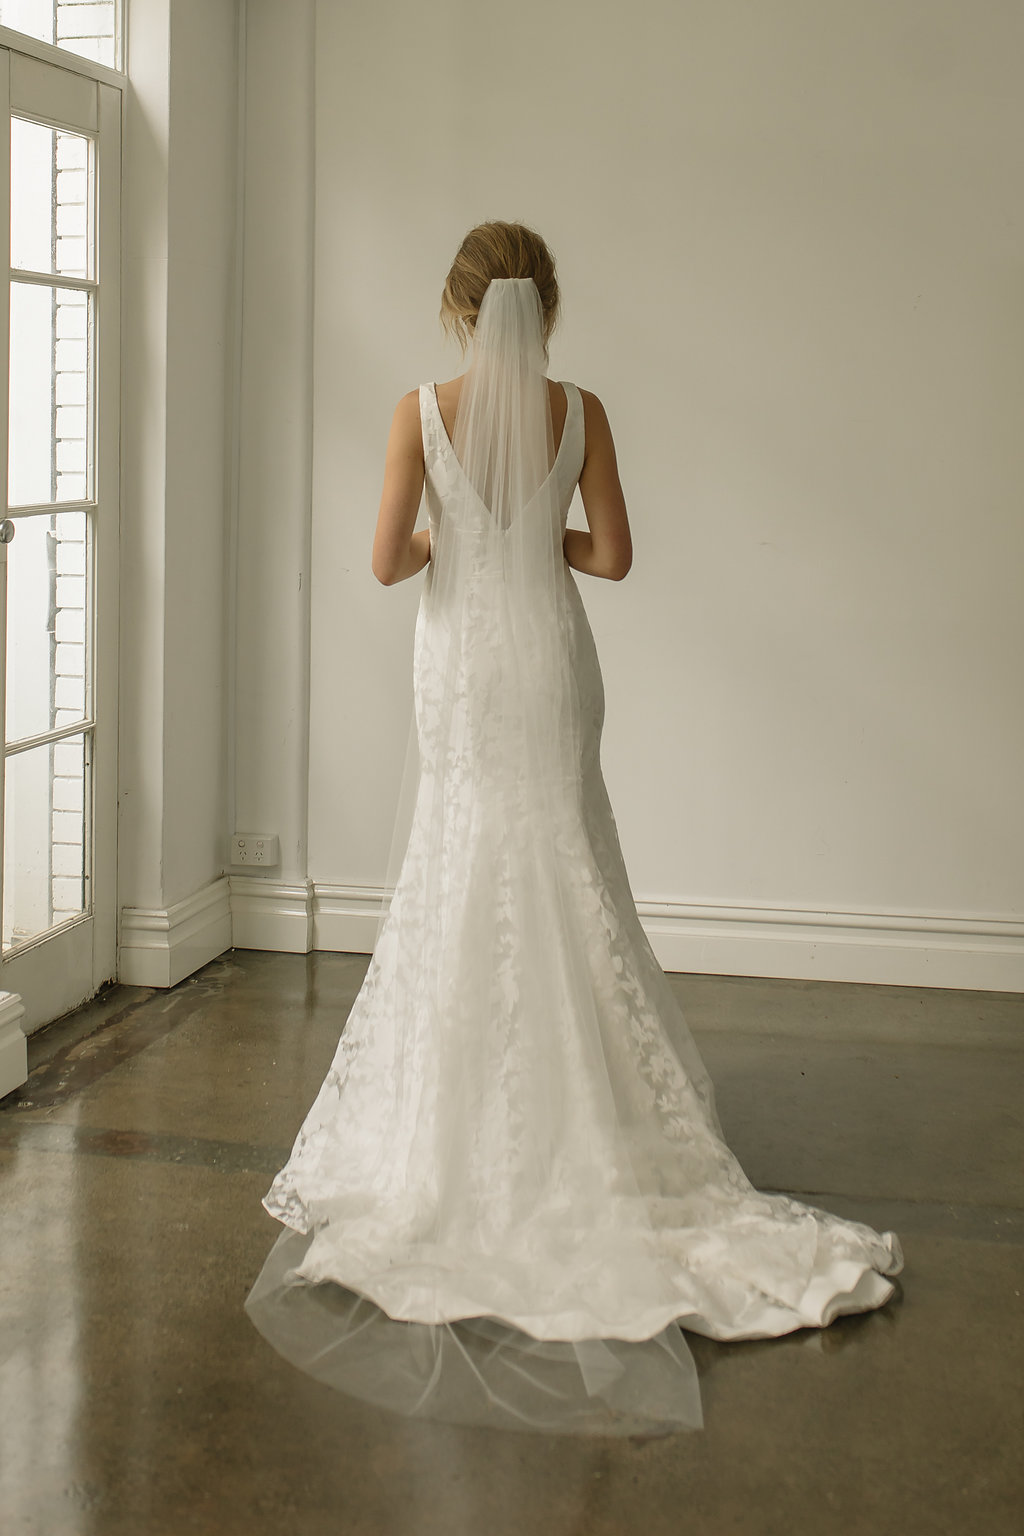 WYNTER CLASSIC CHAPEL LENGTH WEDDING VEIL with Tania Maras Bridal